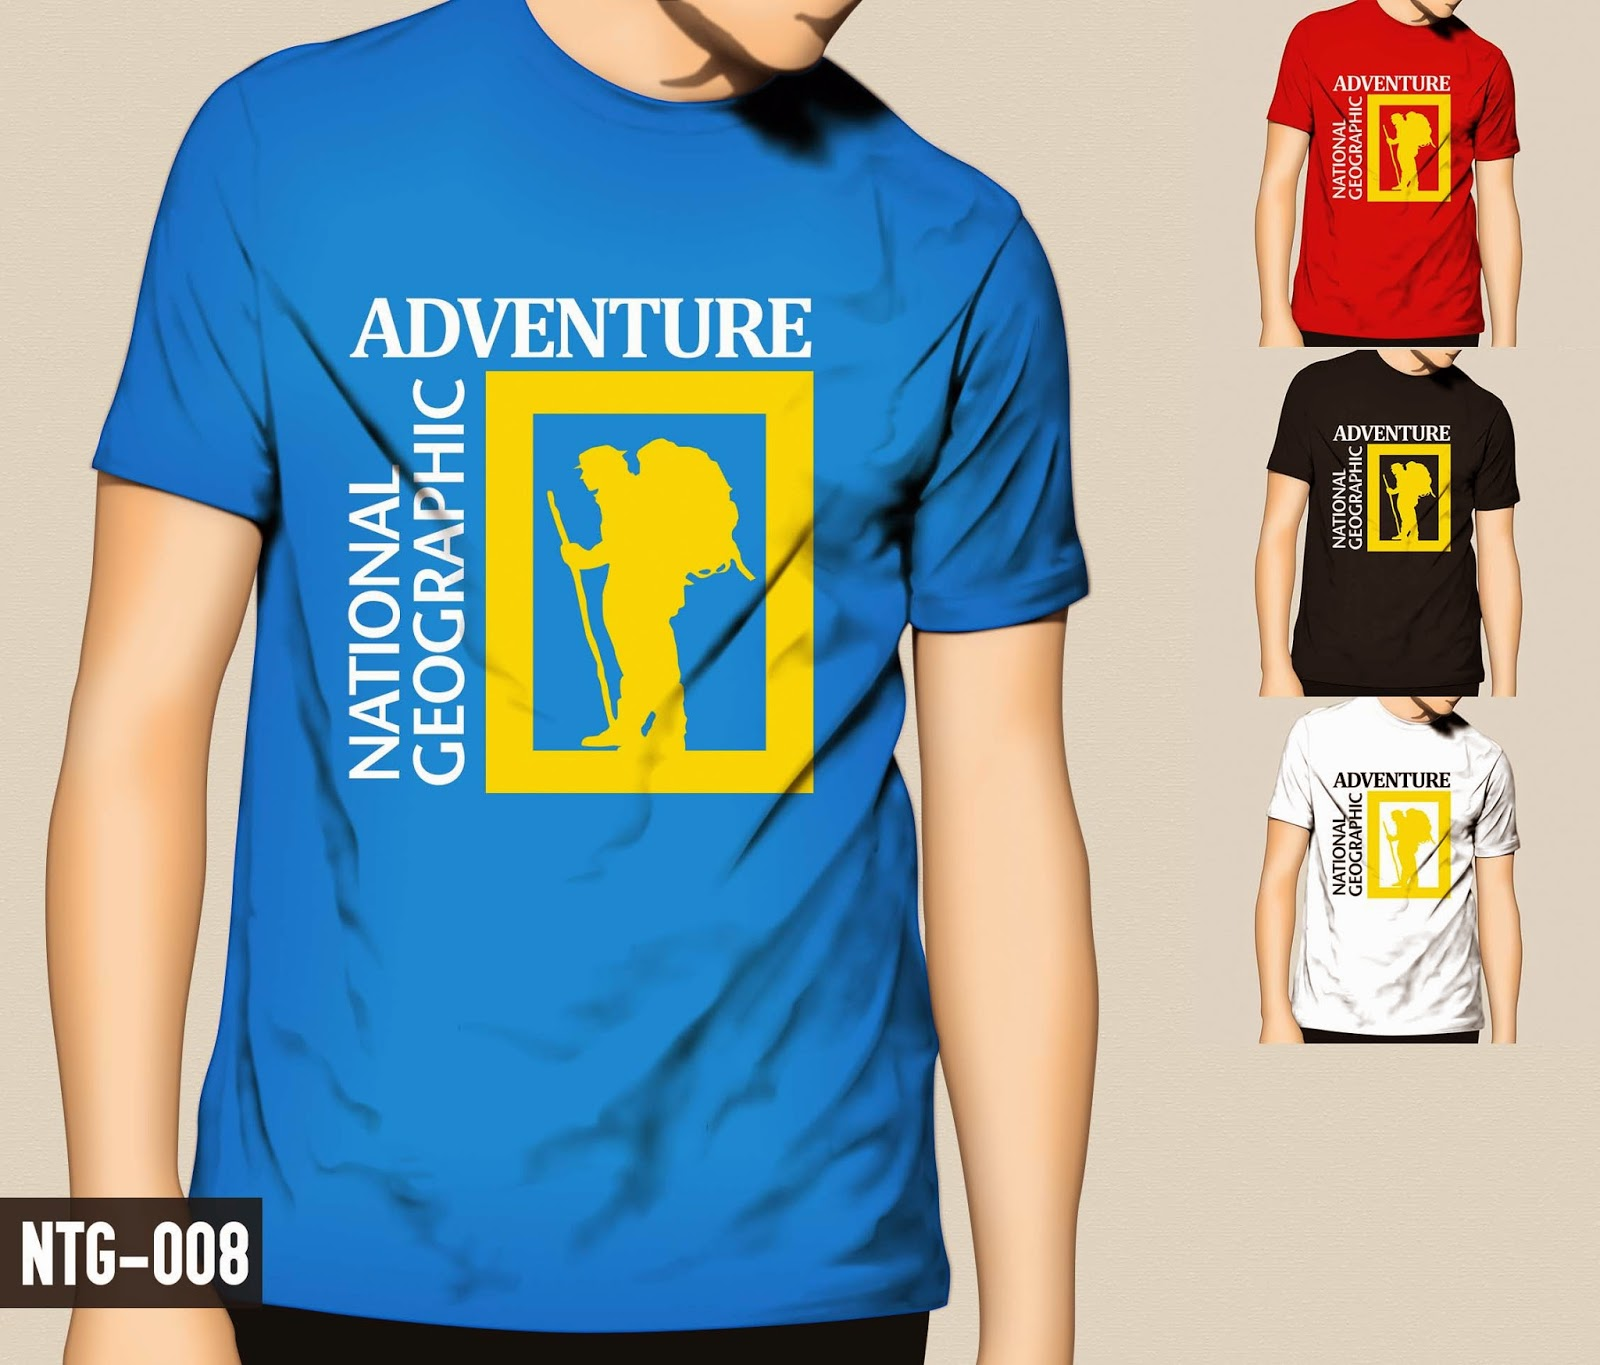 Ntg 008 Adventure Bisnis Distro 100 Tanpa Modal T Shirt National Geographic